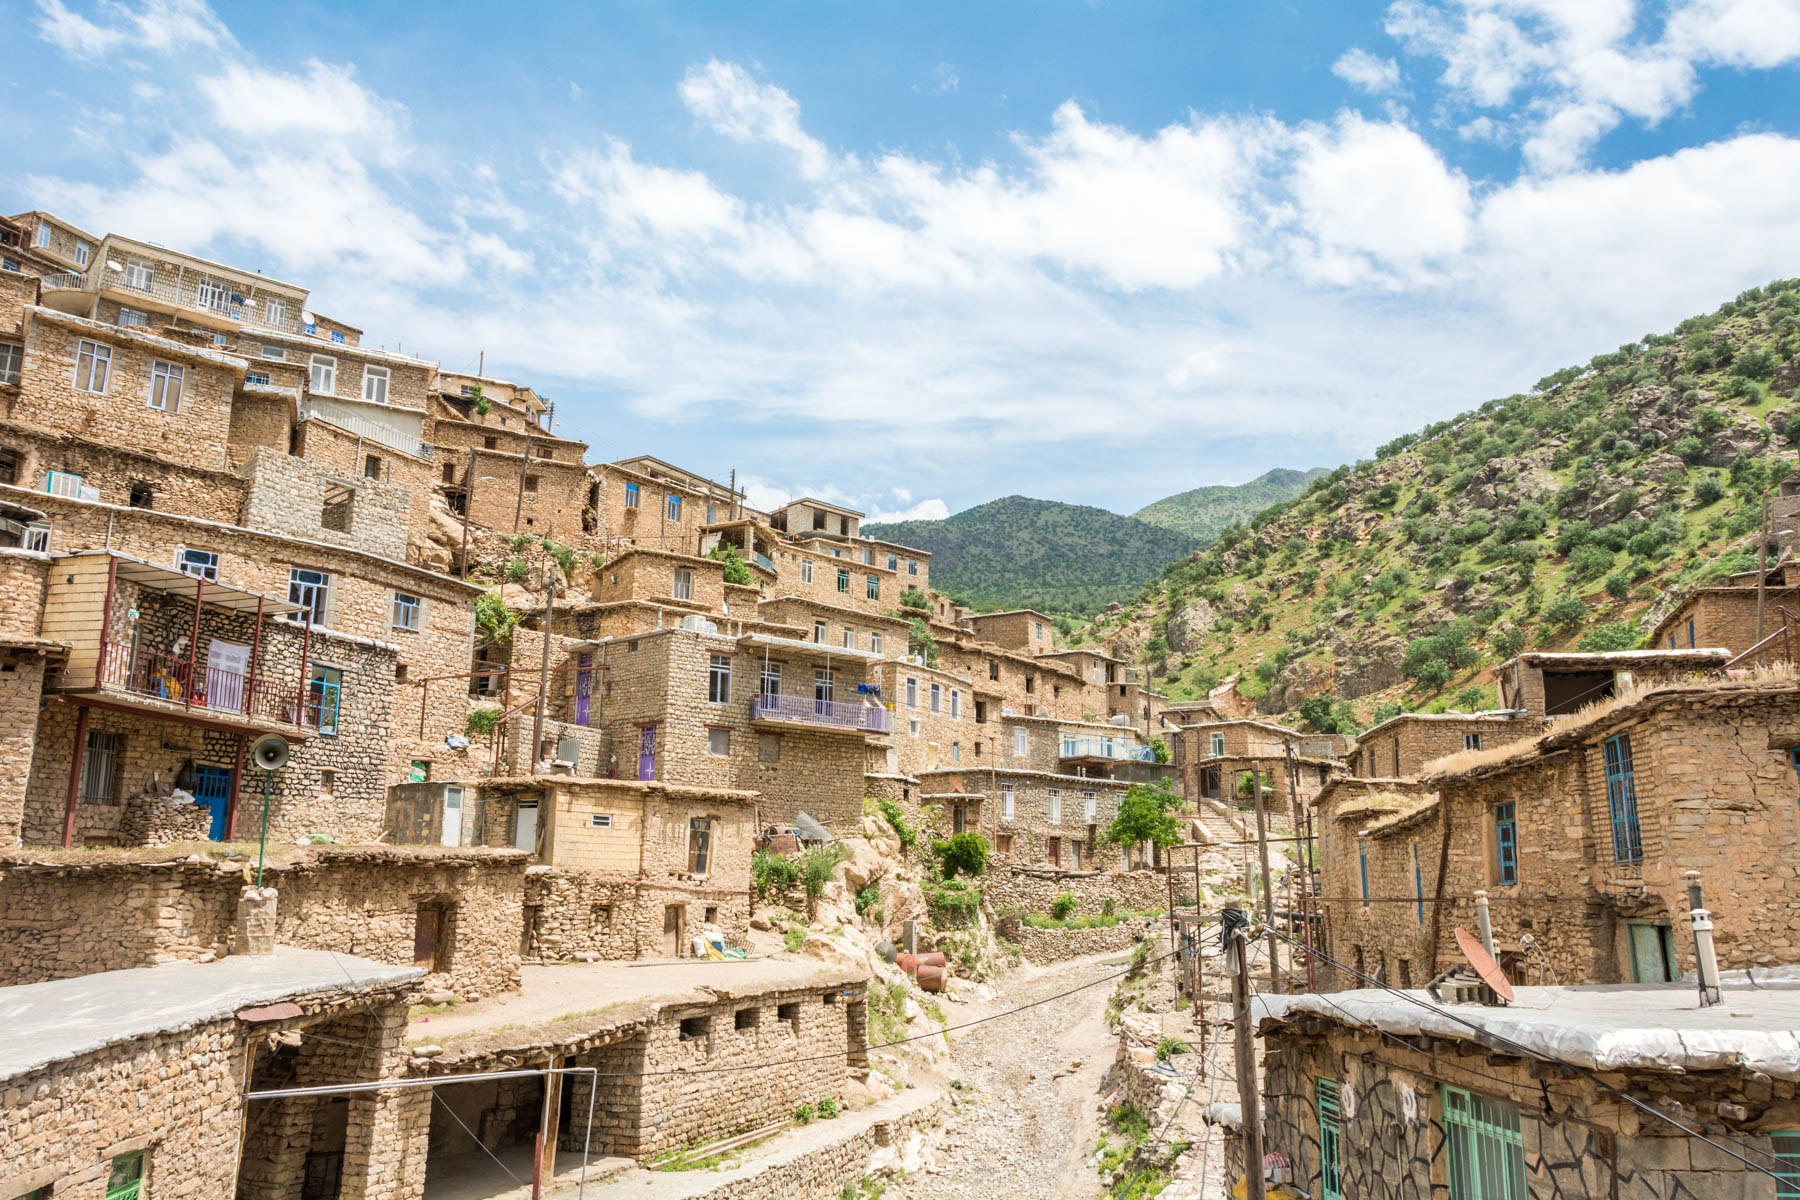 Off the beaten track highlights in Iran: The stepped village of Palangan in Kurdistan, Iran - Lost WIth Purpose